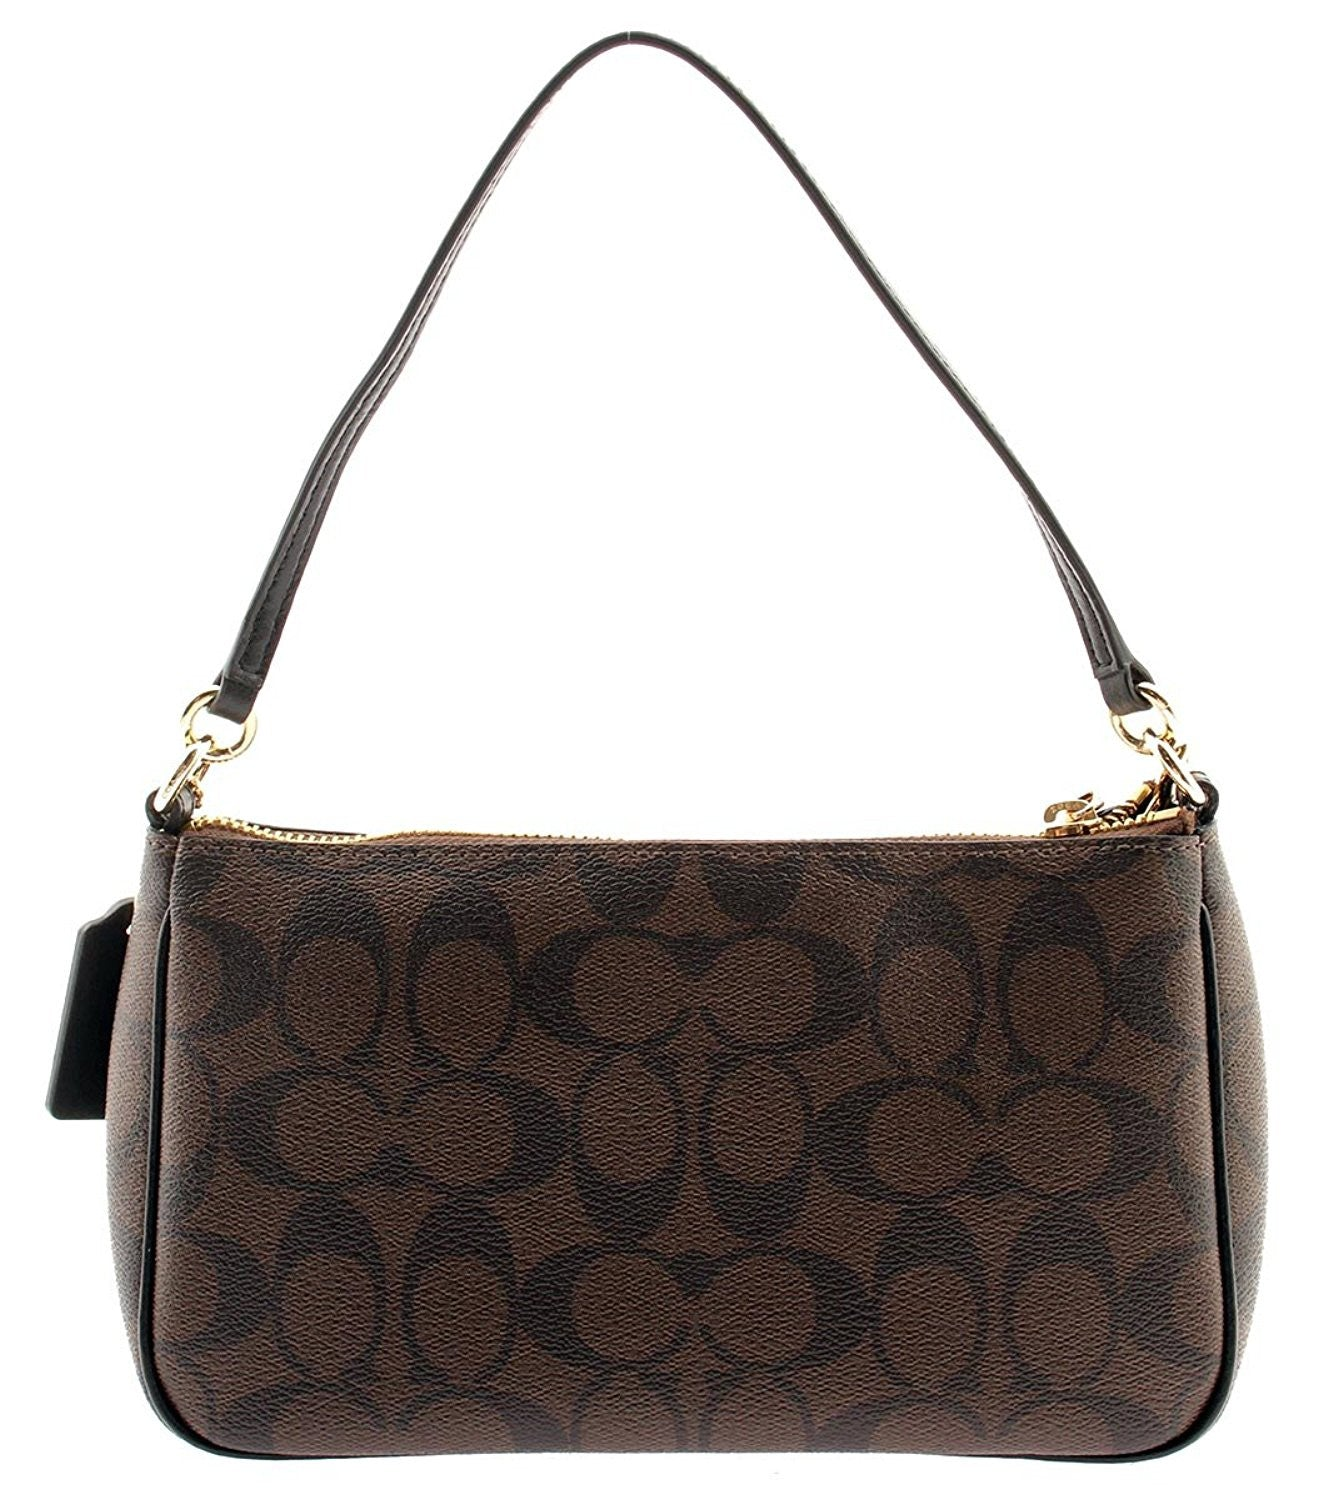 7b493cce2fc2 Messico Top Handle Pouch In Signature (Coach F58321) Gold Light Brown Black